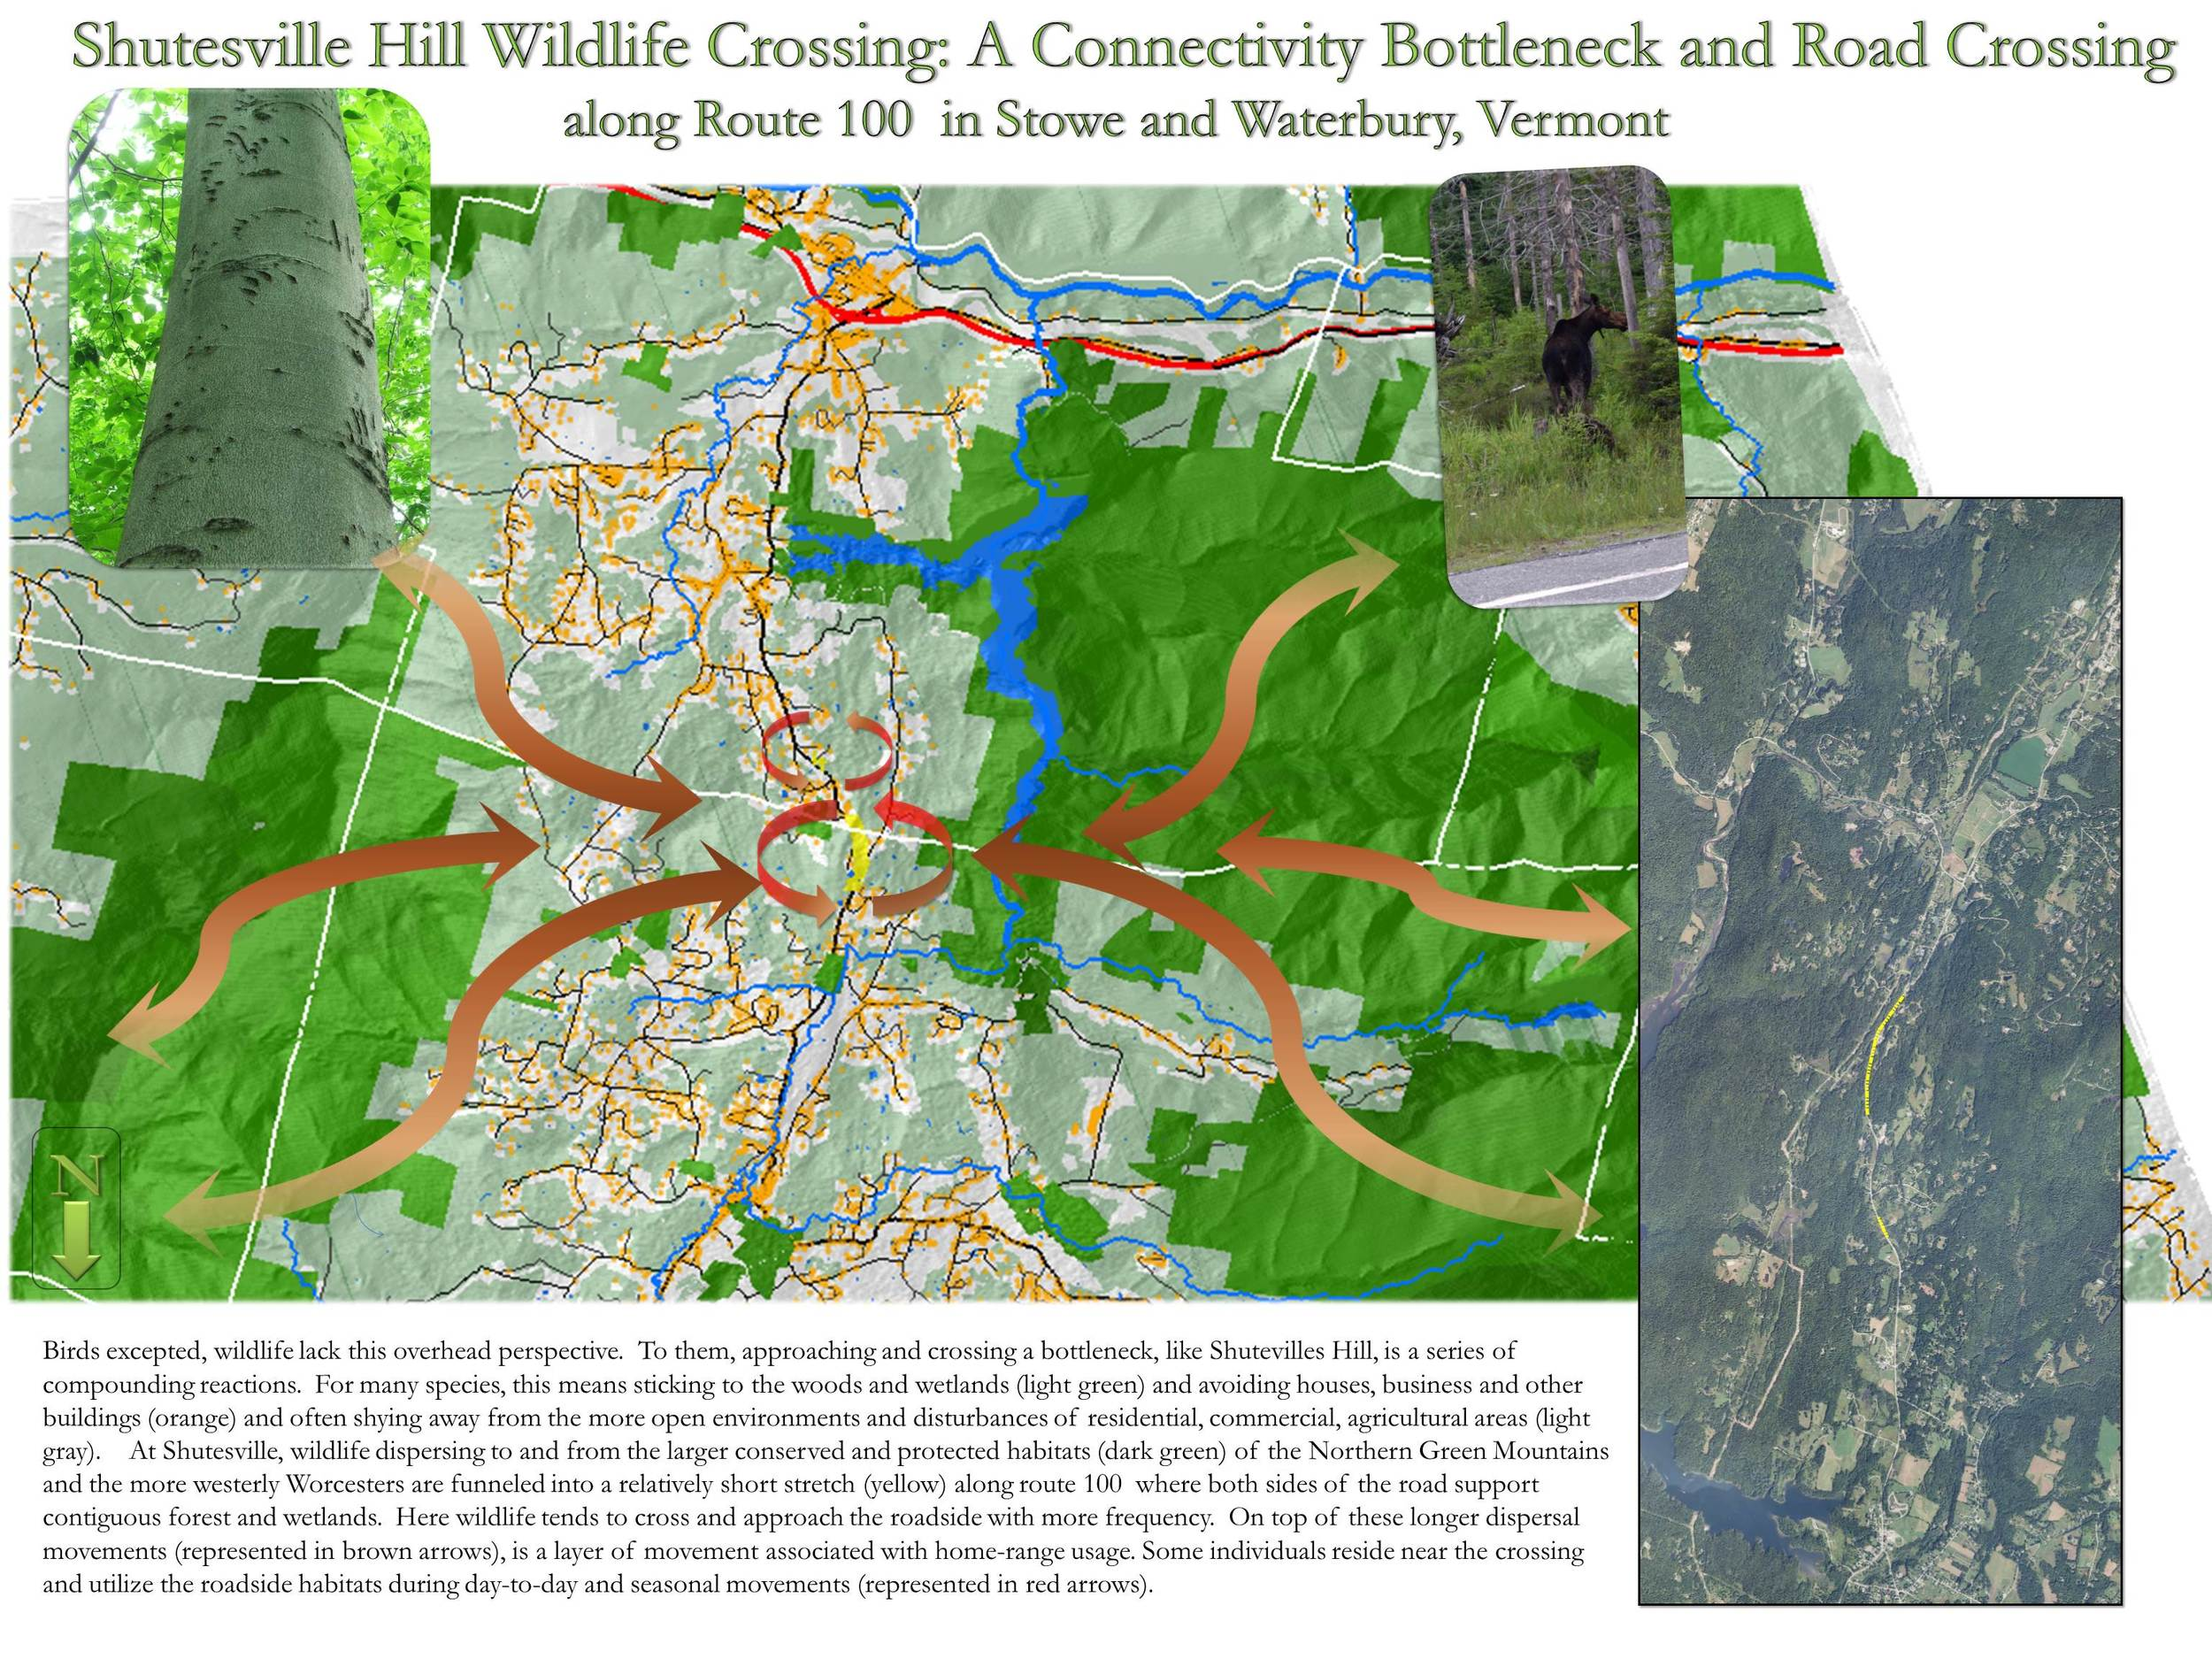 IN 2010, Native Geographic helped identify a critical Wildlife Road Crossing between the Northern Green Mountains and Worcester range (click image for more details) of Vermont.  Stowe Land Trust considered this and many other regional studies while identifying strategic conservation priorities.